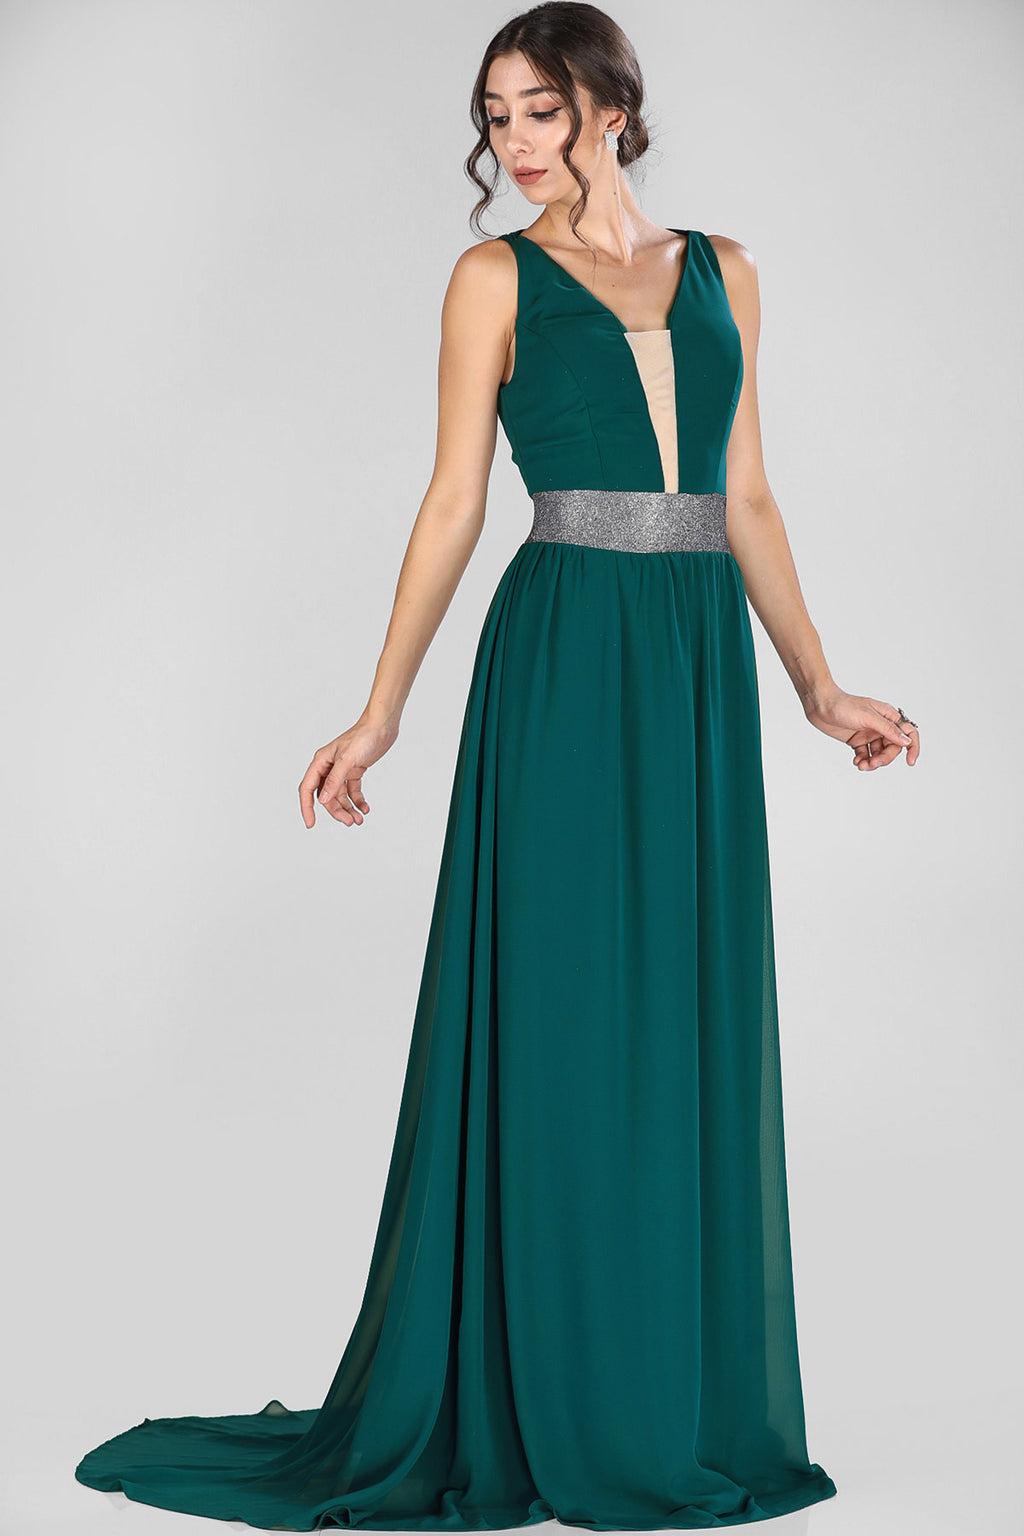 Tulle Detail Dark Green Evening Dress